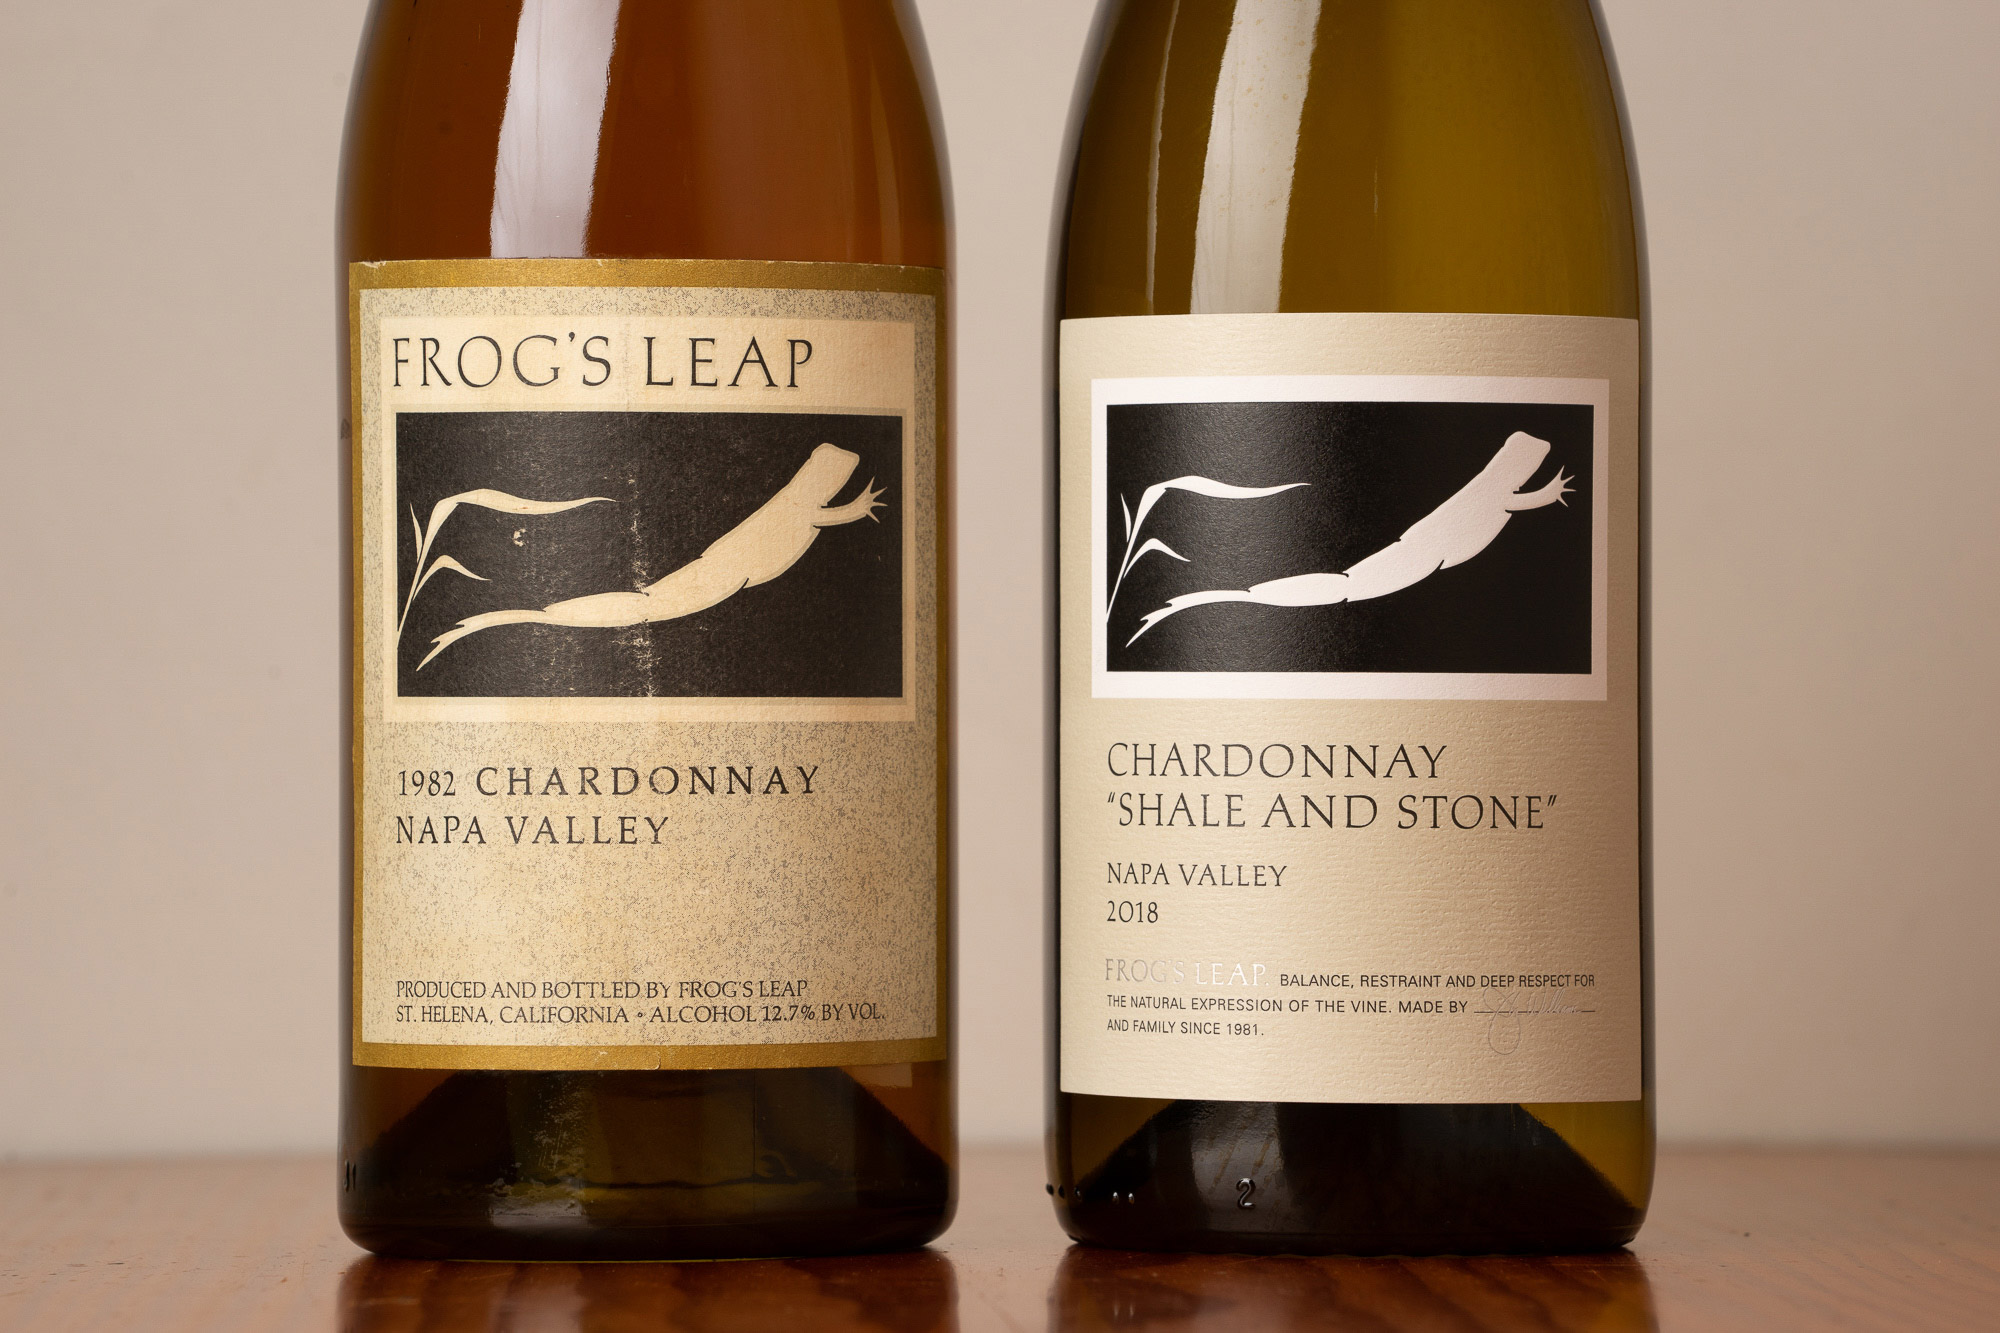 Frog's Leap Packaging